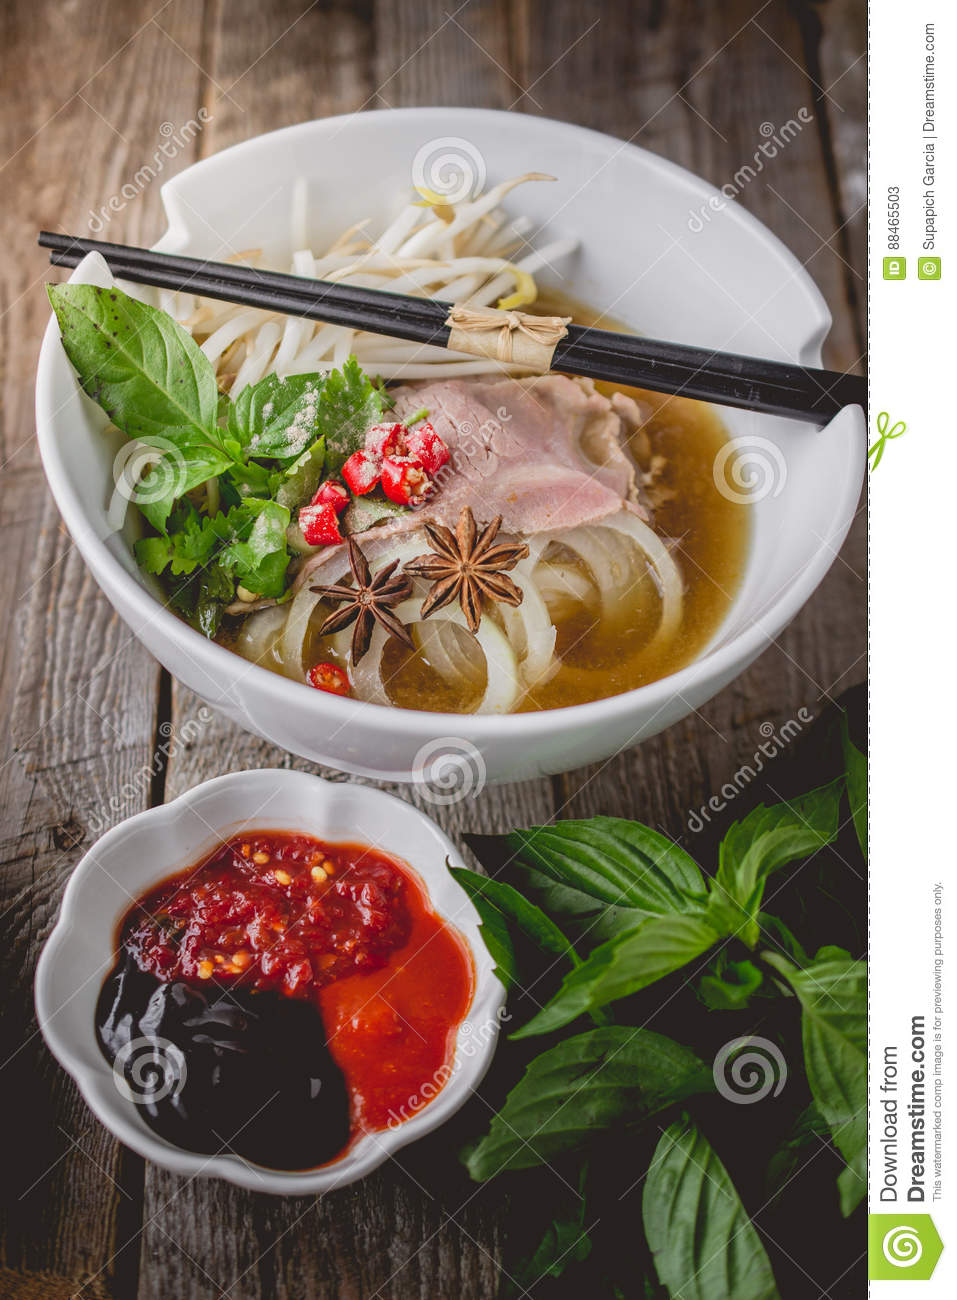 Pho Vietnamse Noodle Soup on Old Wood. Image for Food Advertise